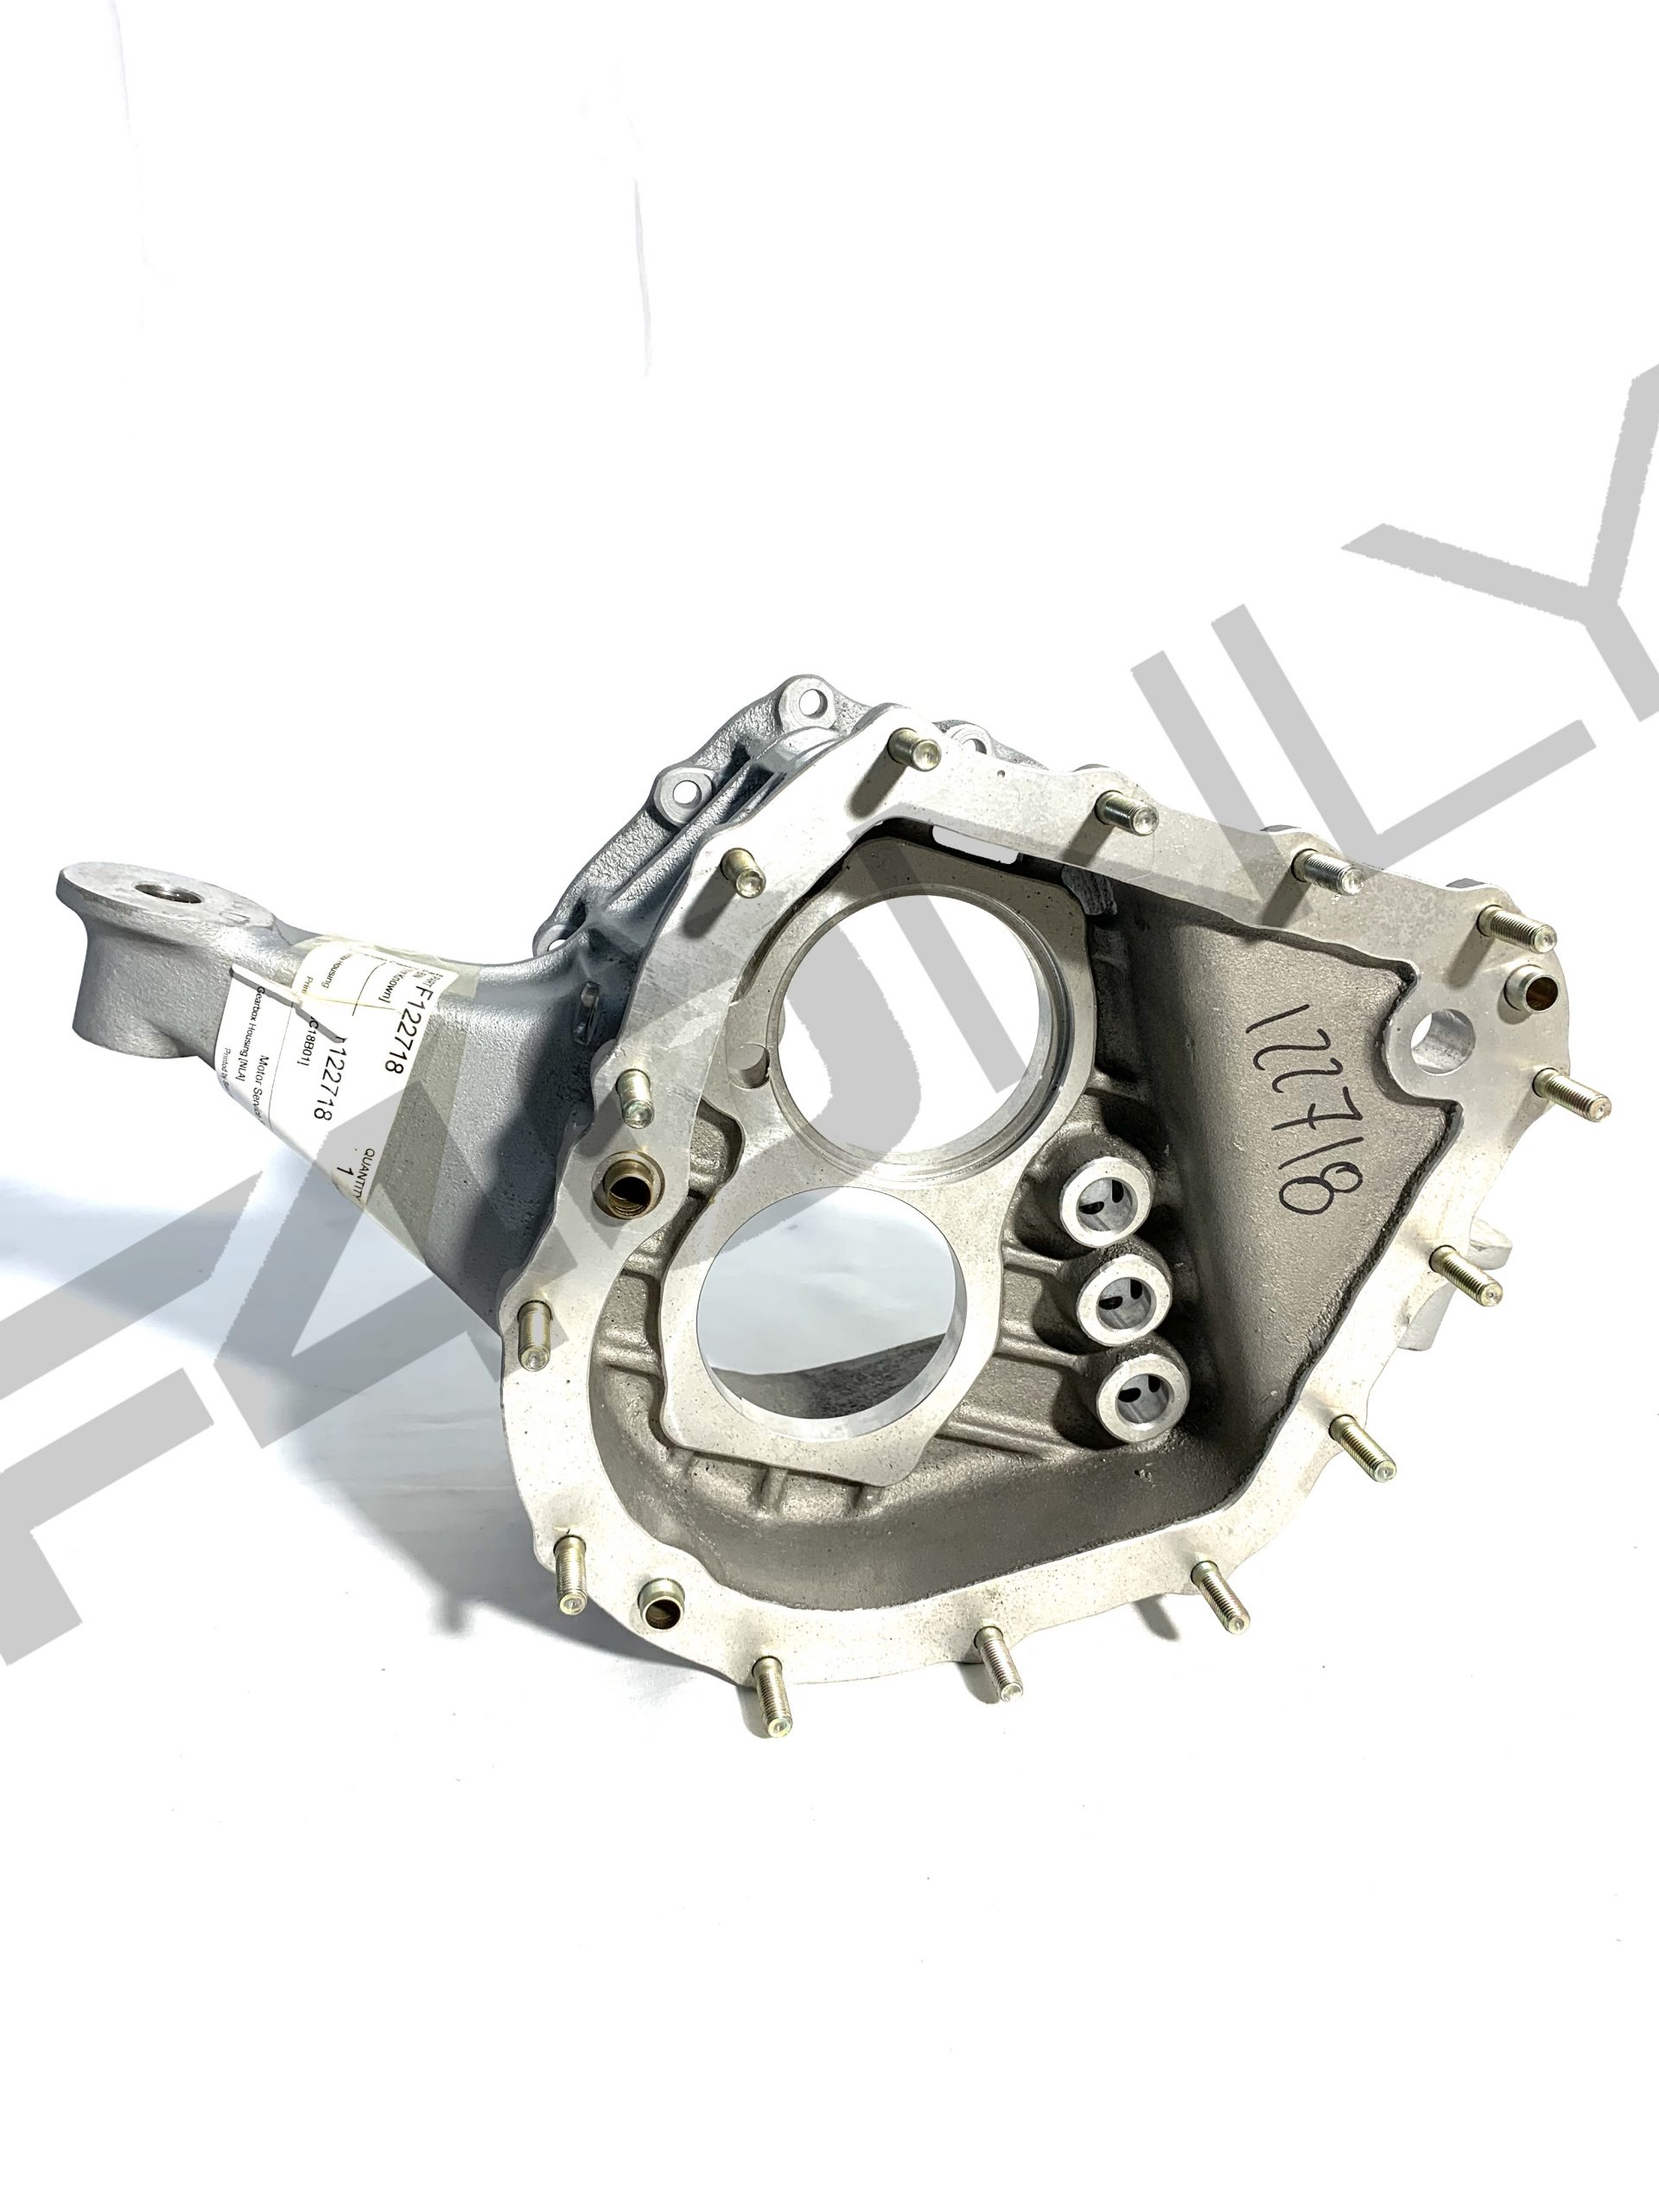 Gearbox Housing Image